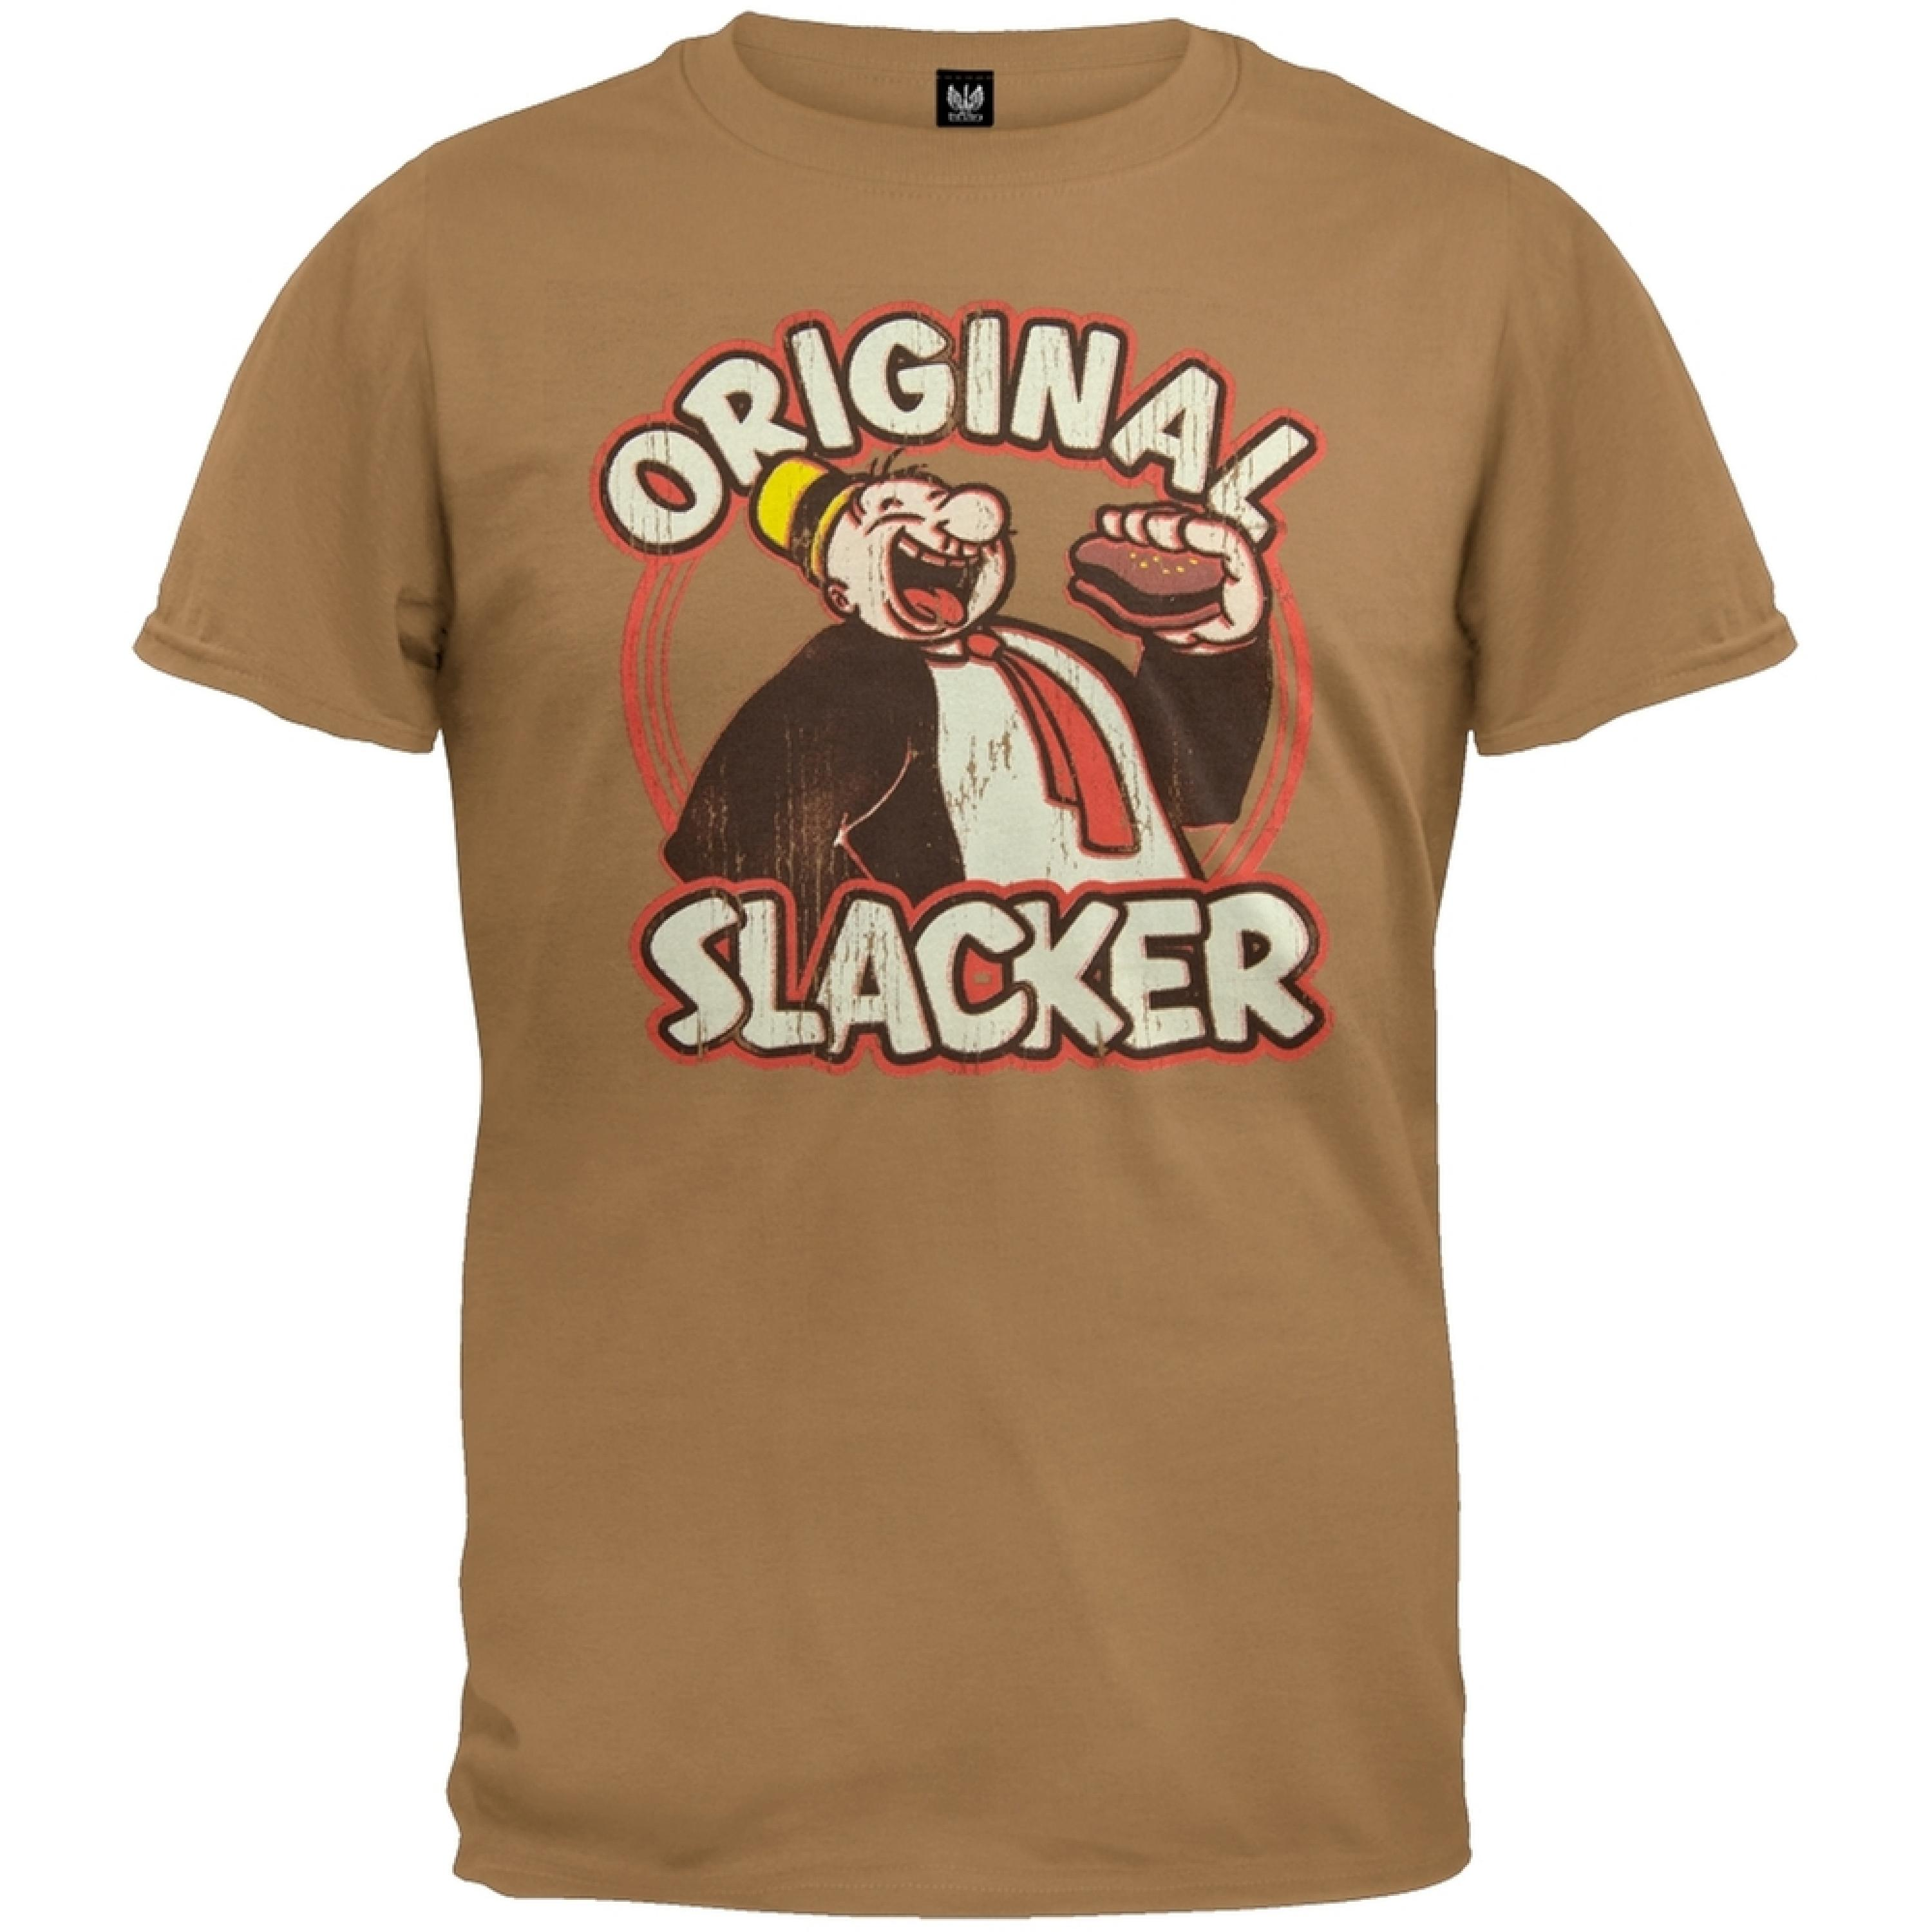 Popeye - Original Slacker T-Shirt